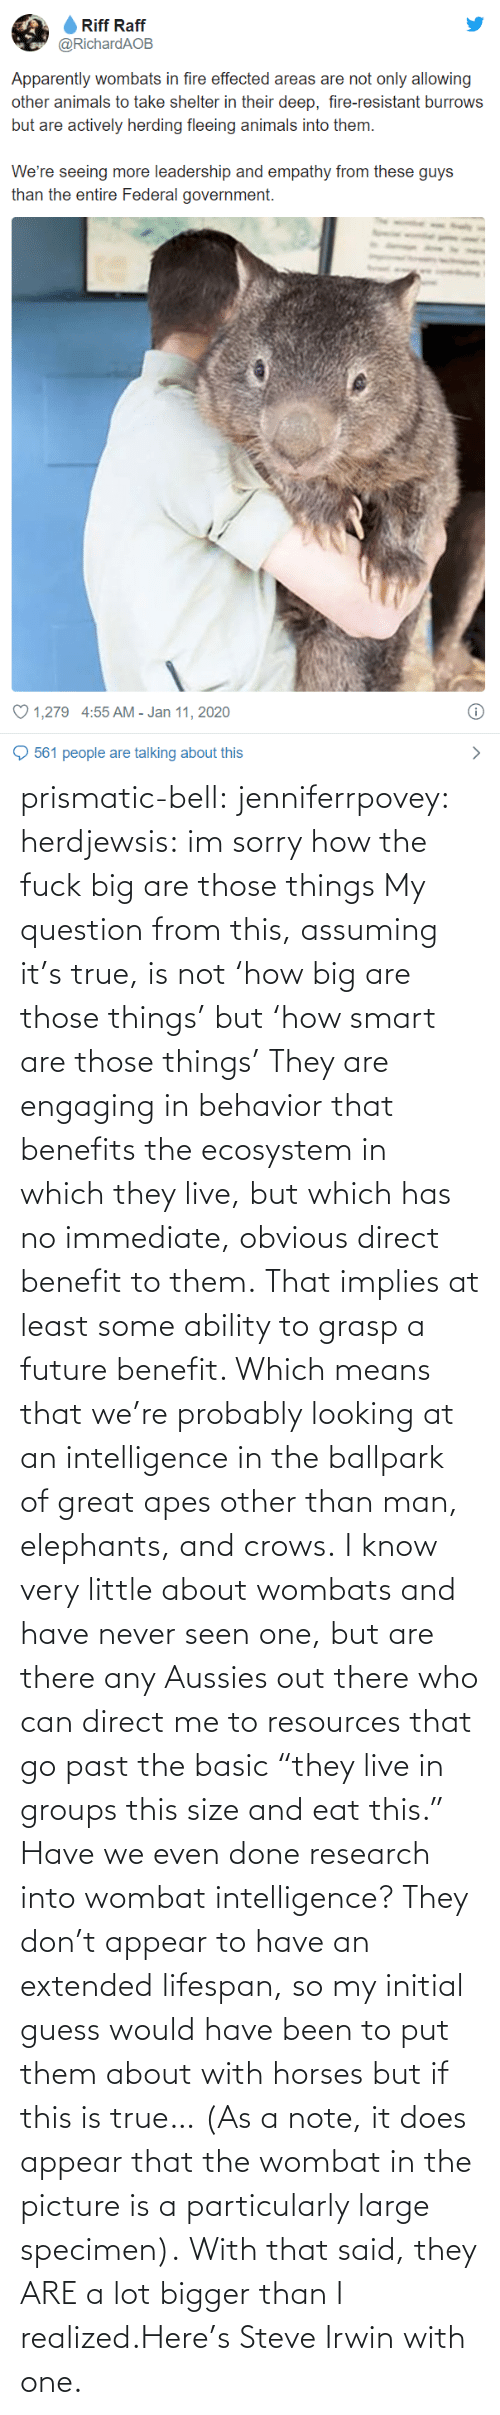 "the fuck: prismatic-bell:  jenniferrpovey: herdjewsis: im sorry how the fuck big are those things My question from this, assuming it's true, is not 'how big are those things' but 'how smart are those things' They are engaging in behavior that benefits the ecosystem in which they live, but which has no immediate, obvious direct benefit to them. That implies at least some ability to grasp a future benefit. Which means that we're probably looking at an intelligence in the ballpark of great apes other than man, elephants, and crows. I know very little about wombats and have never seen one, but are there any Aussies out there who can direct me to resources that go past the basic ""they live in groups this size and eat this."" Have we even done research into wombat intelligence? They don't appear to have an extended lifespan, so my initial guess would have been to put them about with horses but if this is true… (As a note, it does appear that the wombat in the picture is a particularly large specimen).  With that said, they ARE a lot bigger than I realized.Here's Steve Irwin with one."